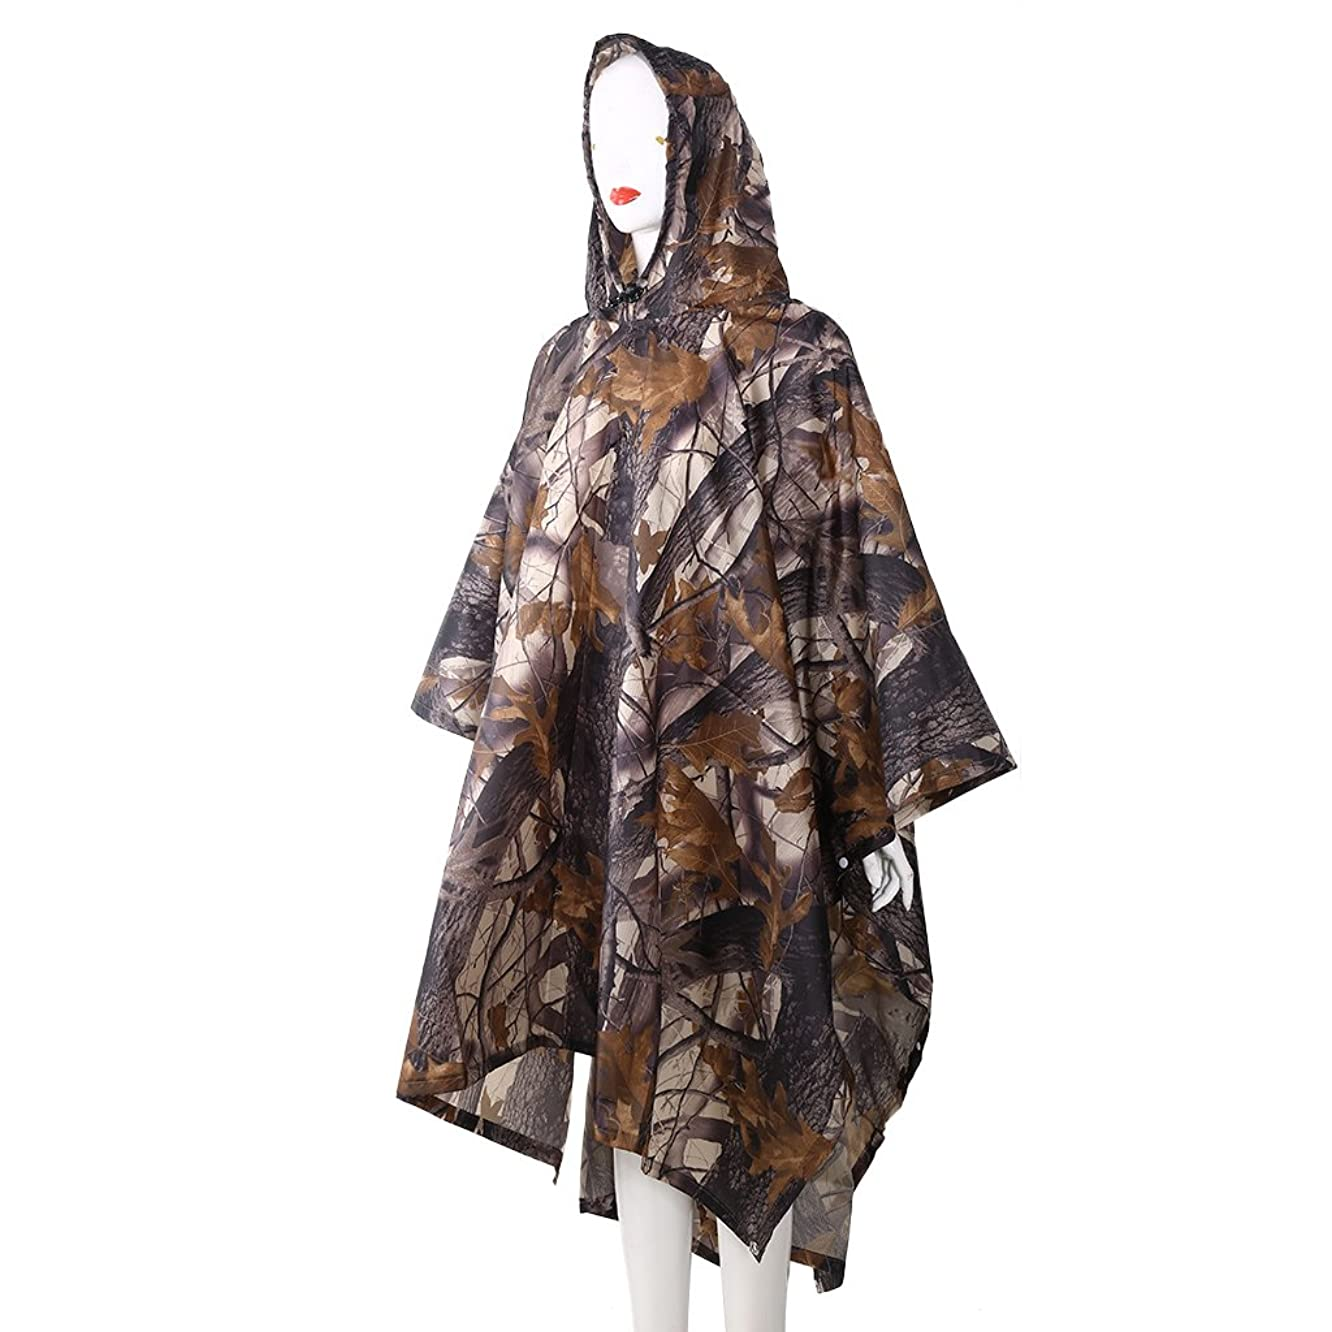 CHBC 3in1 Waterproof Rain Military Camouflage Poncho(Expand Size : 86.6157.09in)/Multifunctional Raincoat - Camping Tent Rain Cover Outdoor with a Easy Carry Bag … (B#)